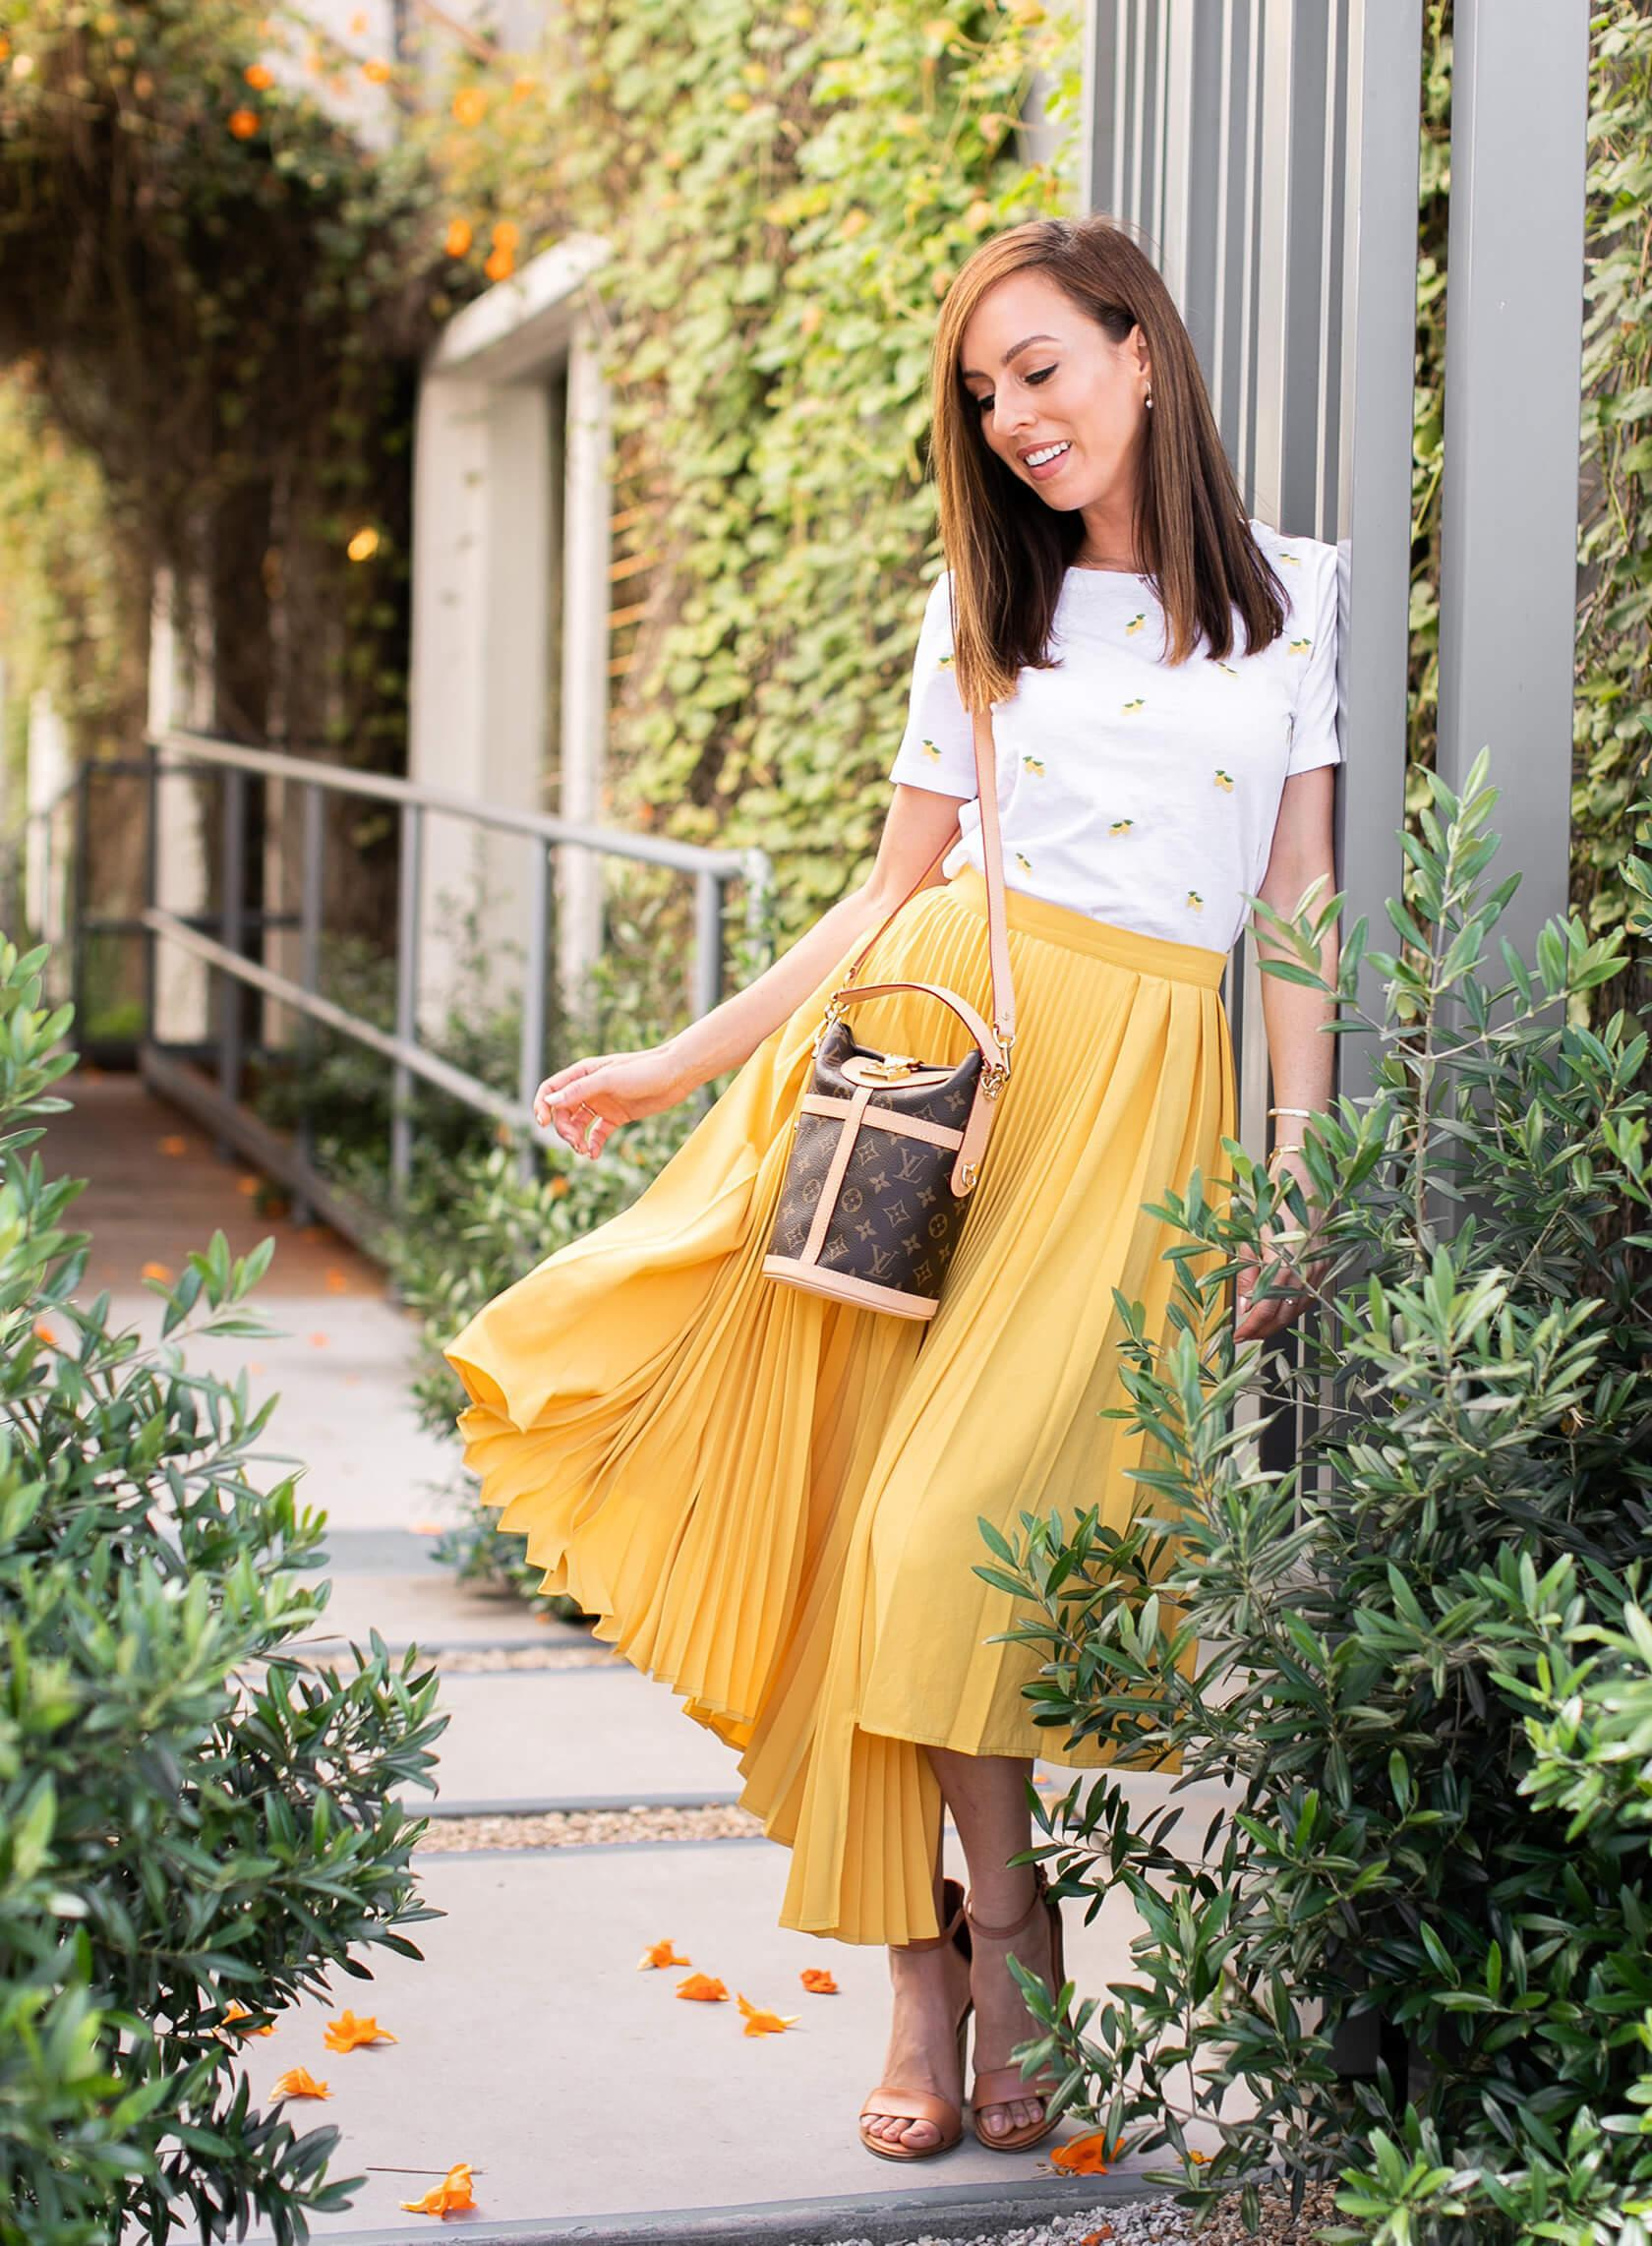 sydne summer's fashion reviews & style tips blogger t-shirt jeans shorts dress skirt shoes bag